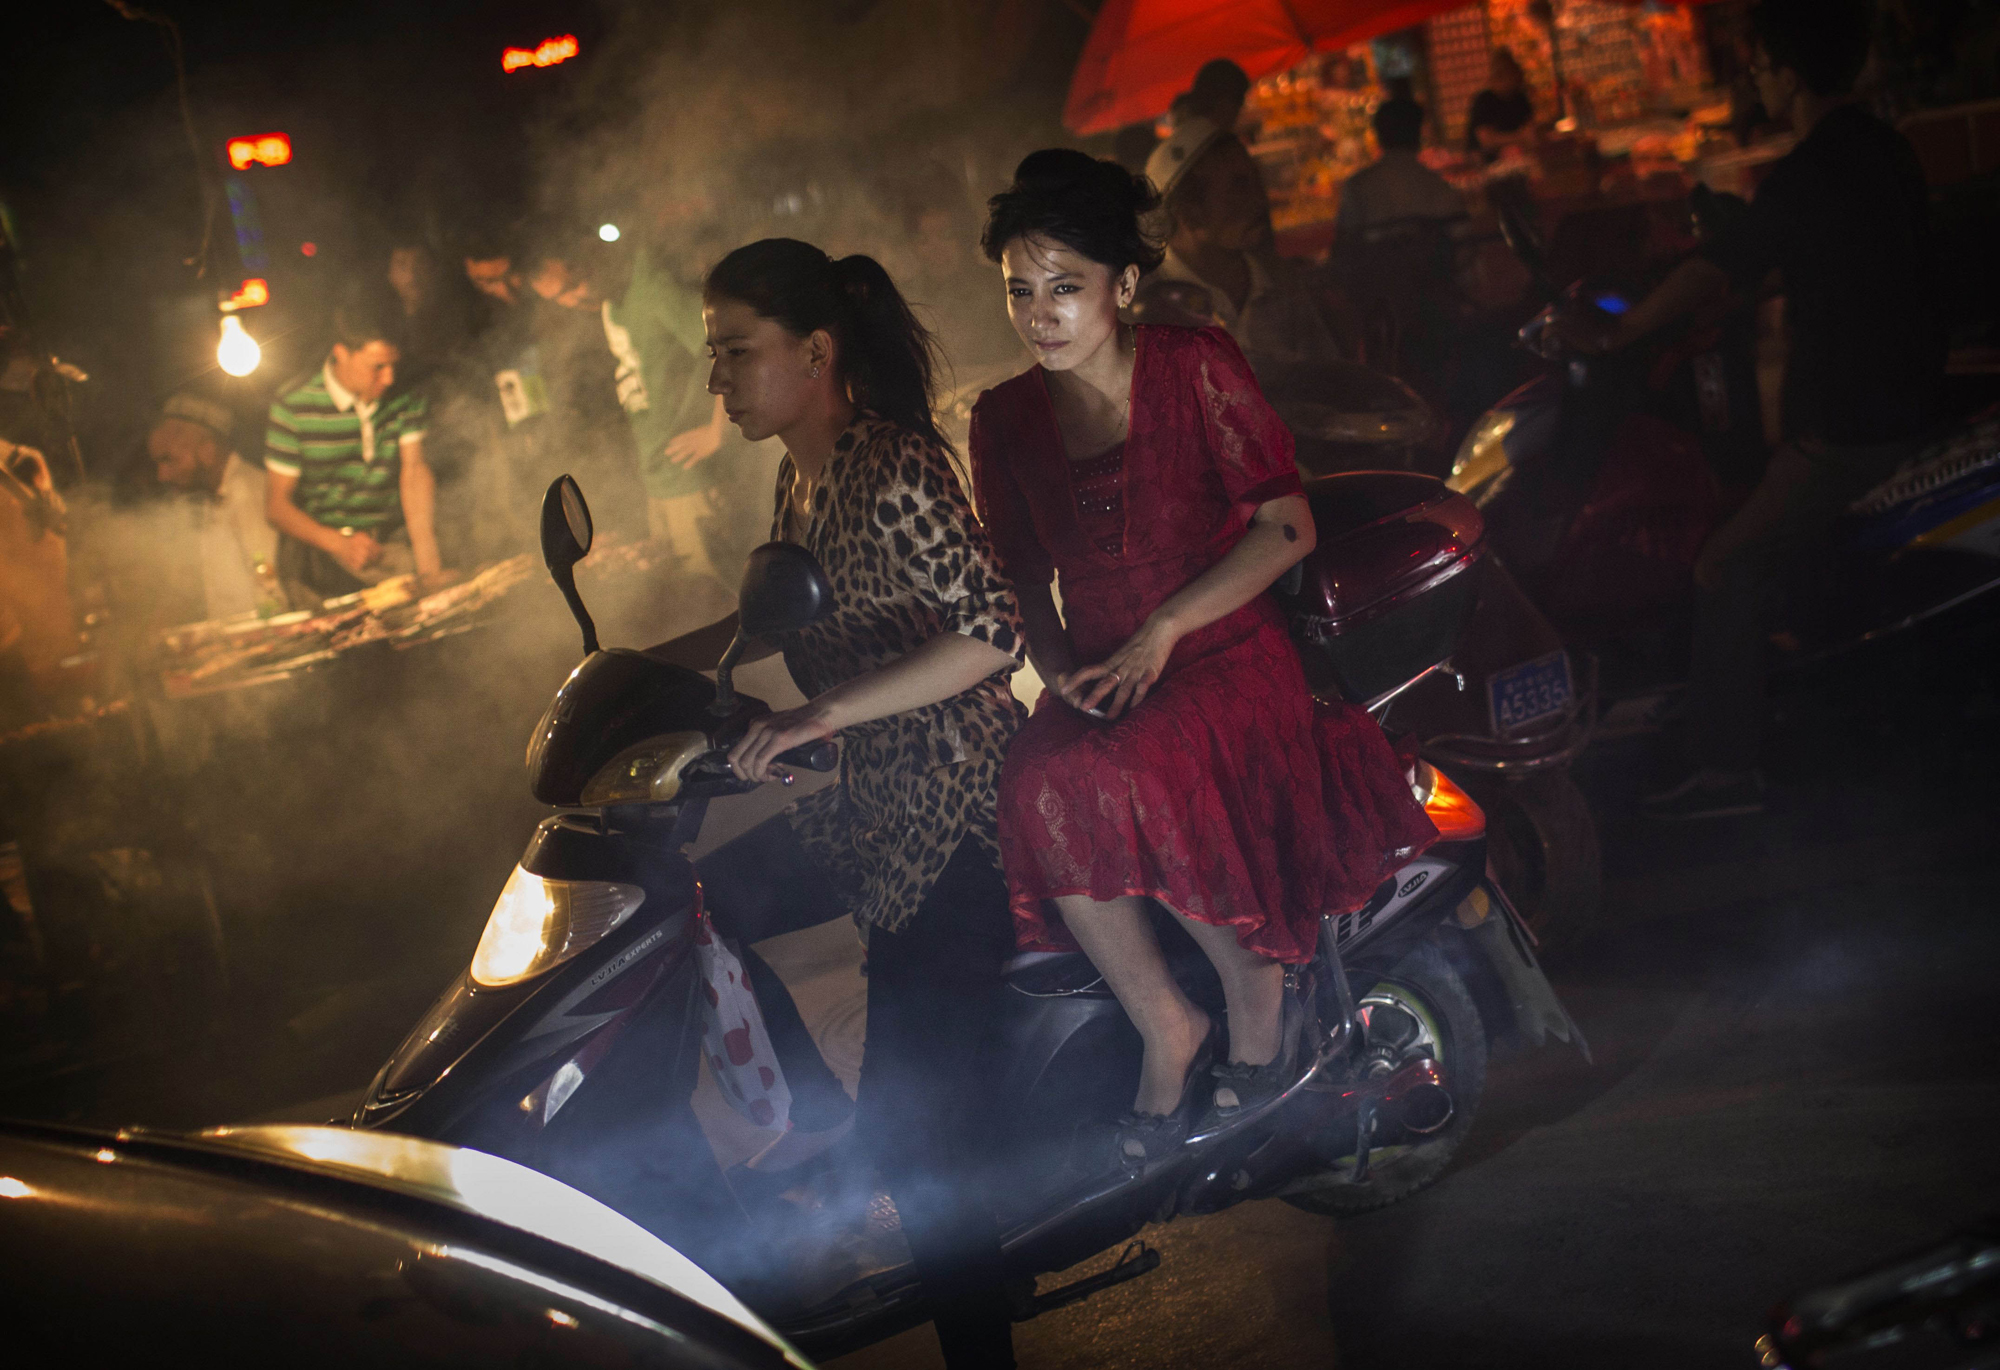 Uighur women without veils ride on a scooter in a market on July 27, 2014 in old Kashgar.